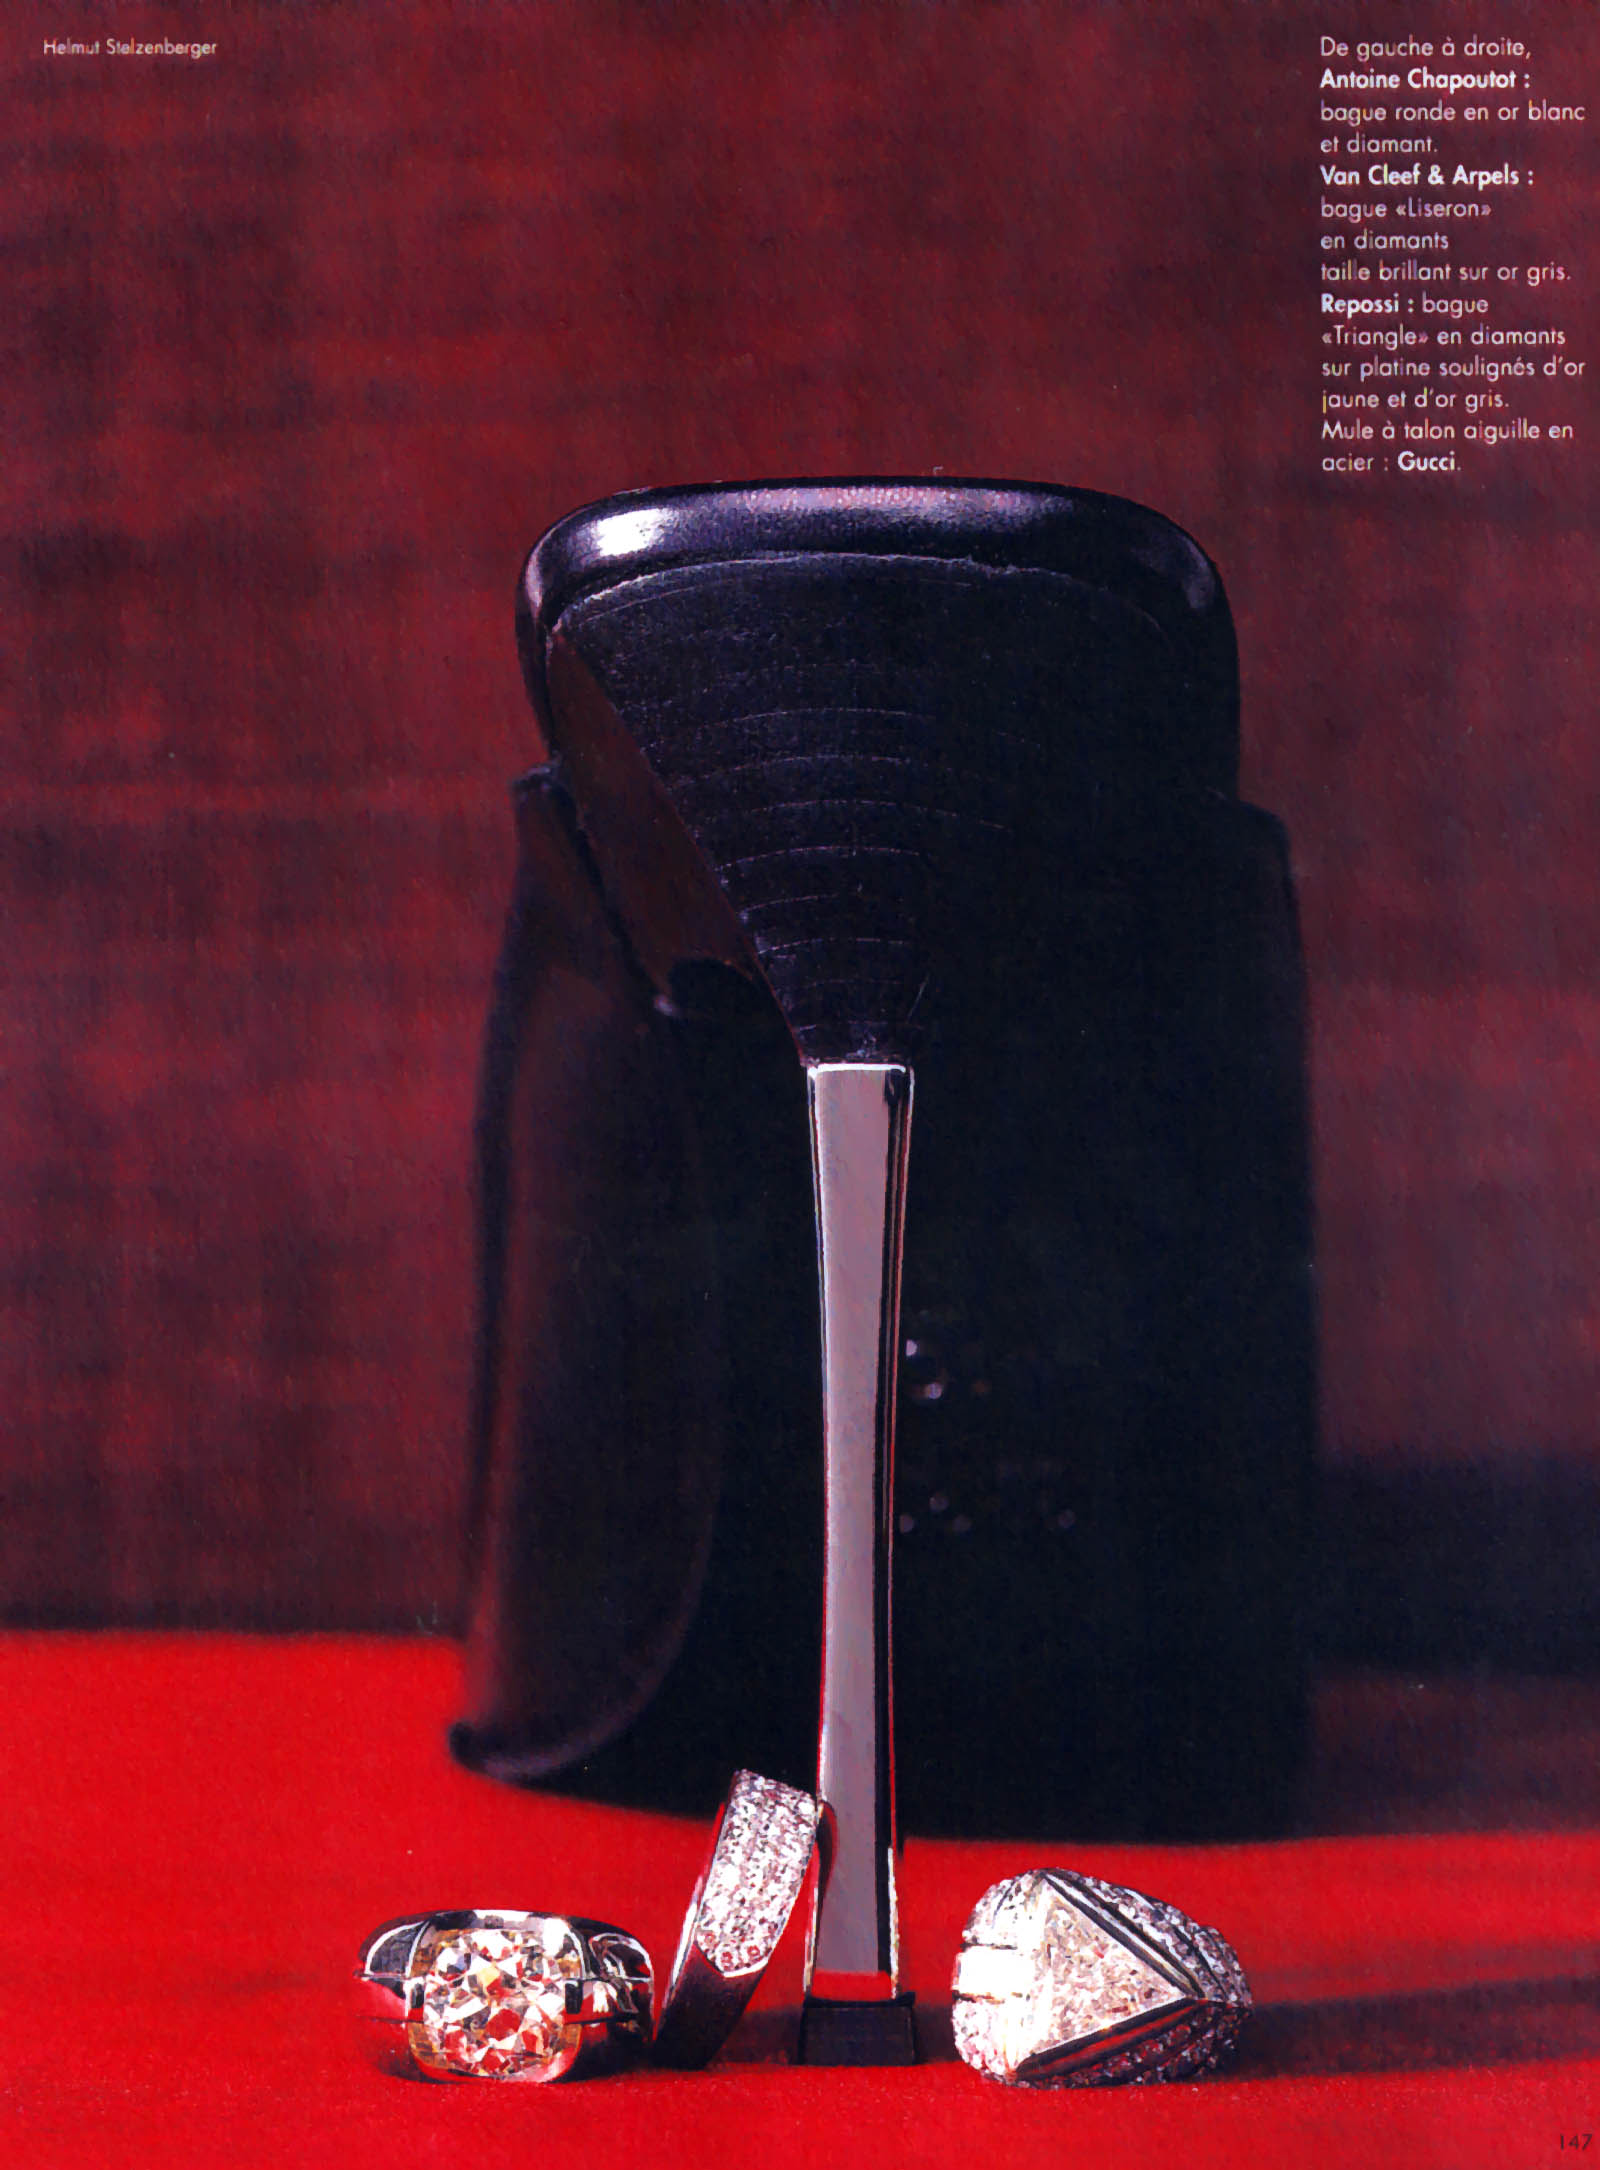 1997 L'OFFICIEL - Août97 - photo.jpg